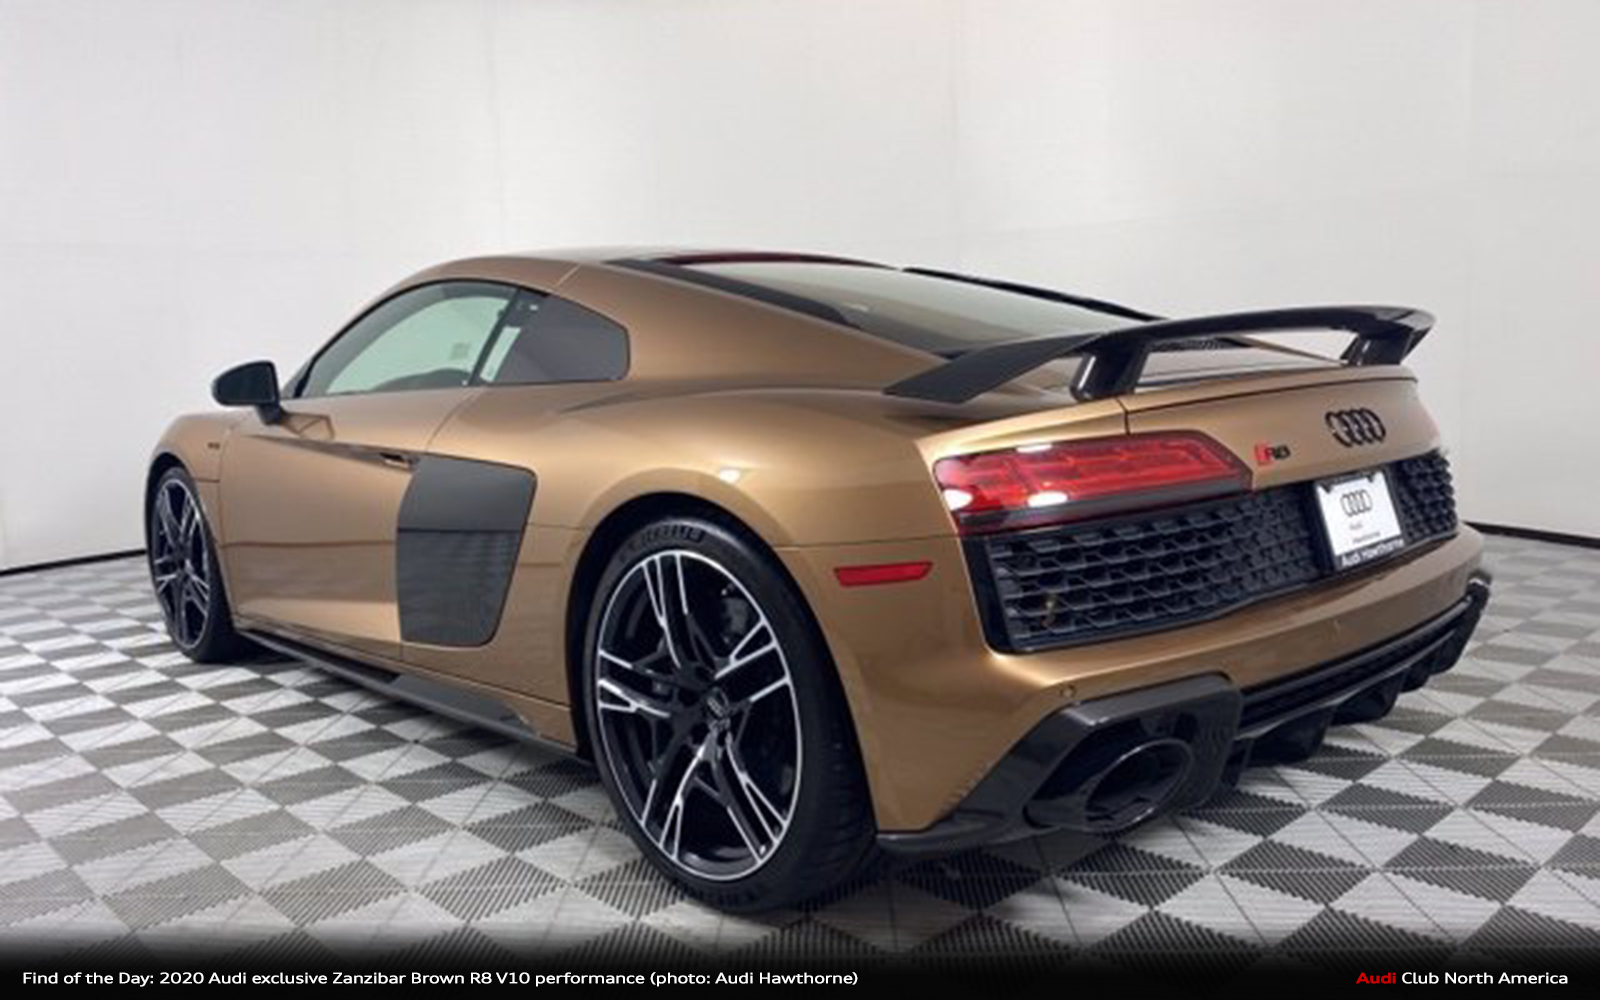 Find of the Day: 2020 Audi exclusive Zanzibar Brown R8 V10 performance